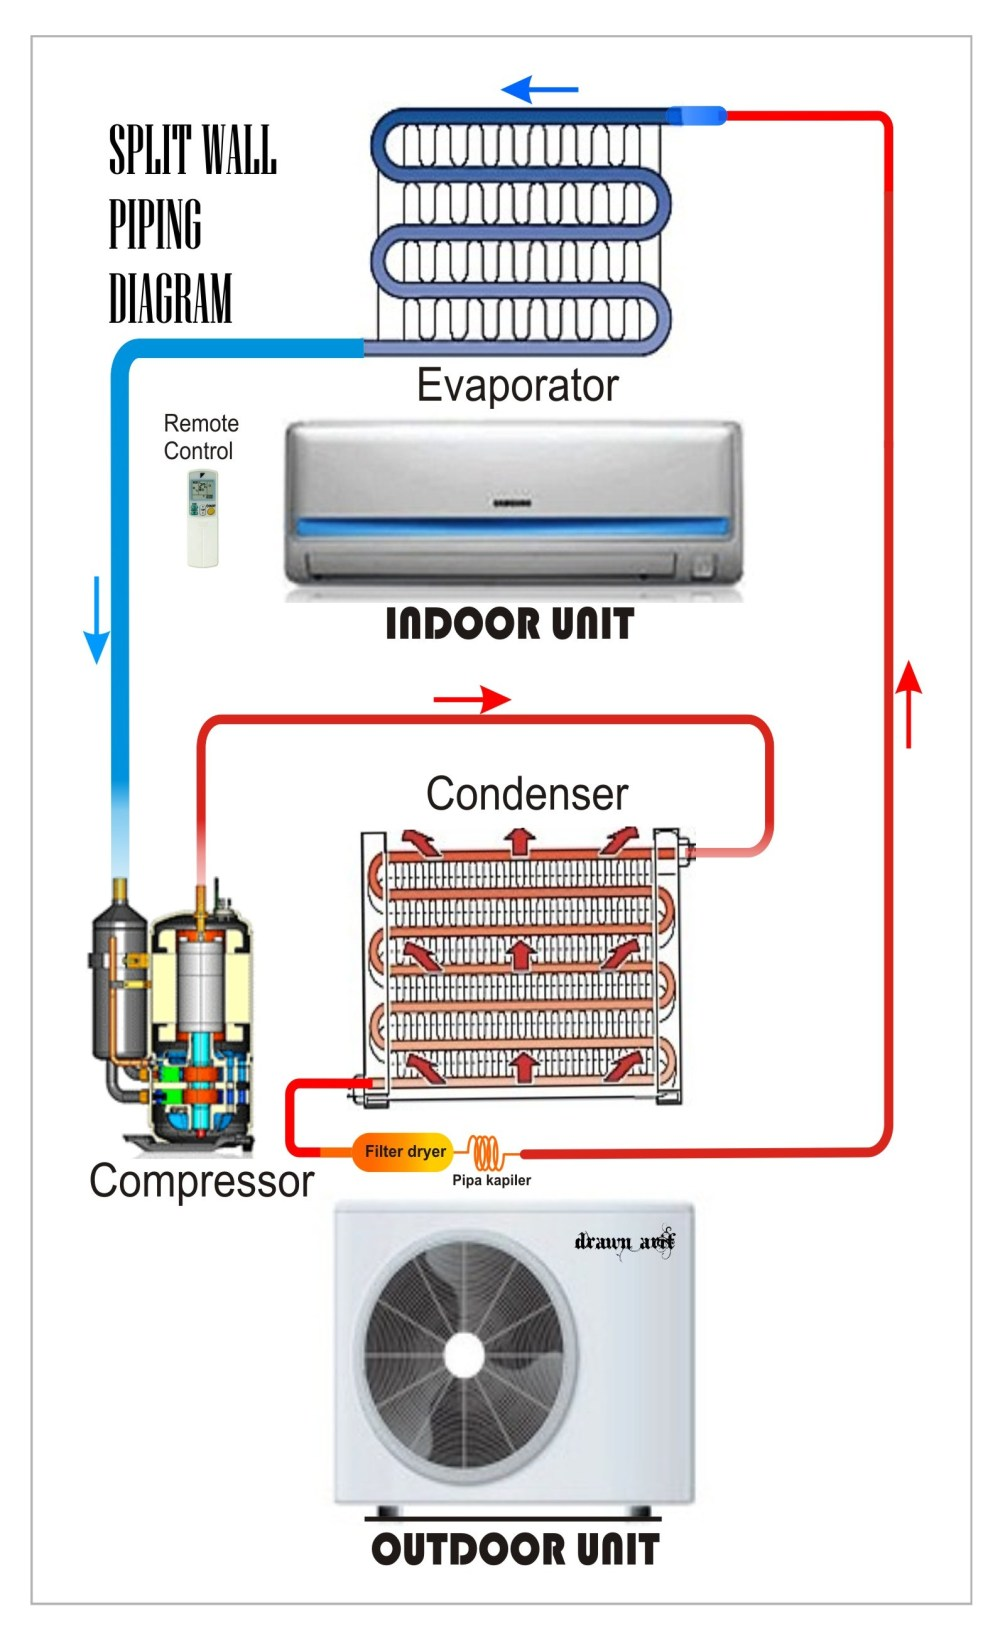 medium resolution of split wall piping diagram refrigeration air conditioning wiring diagram for a condensing unit